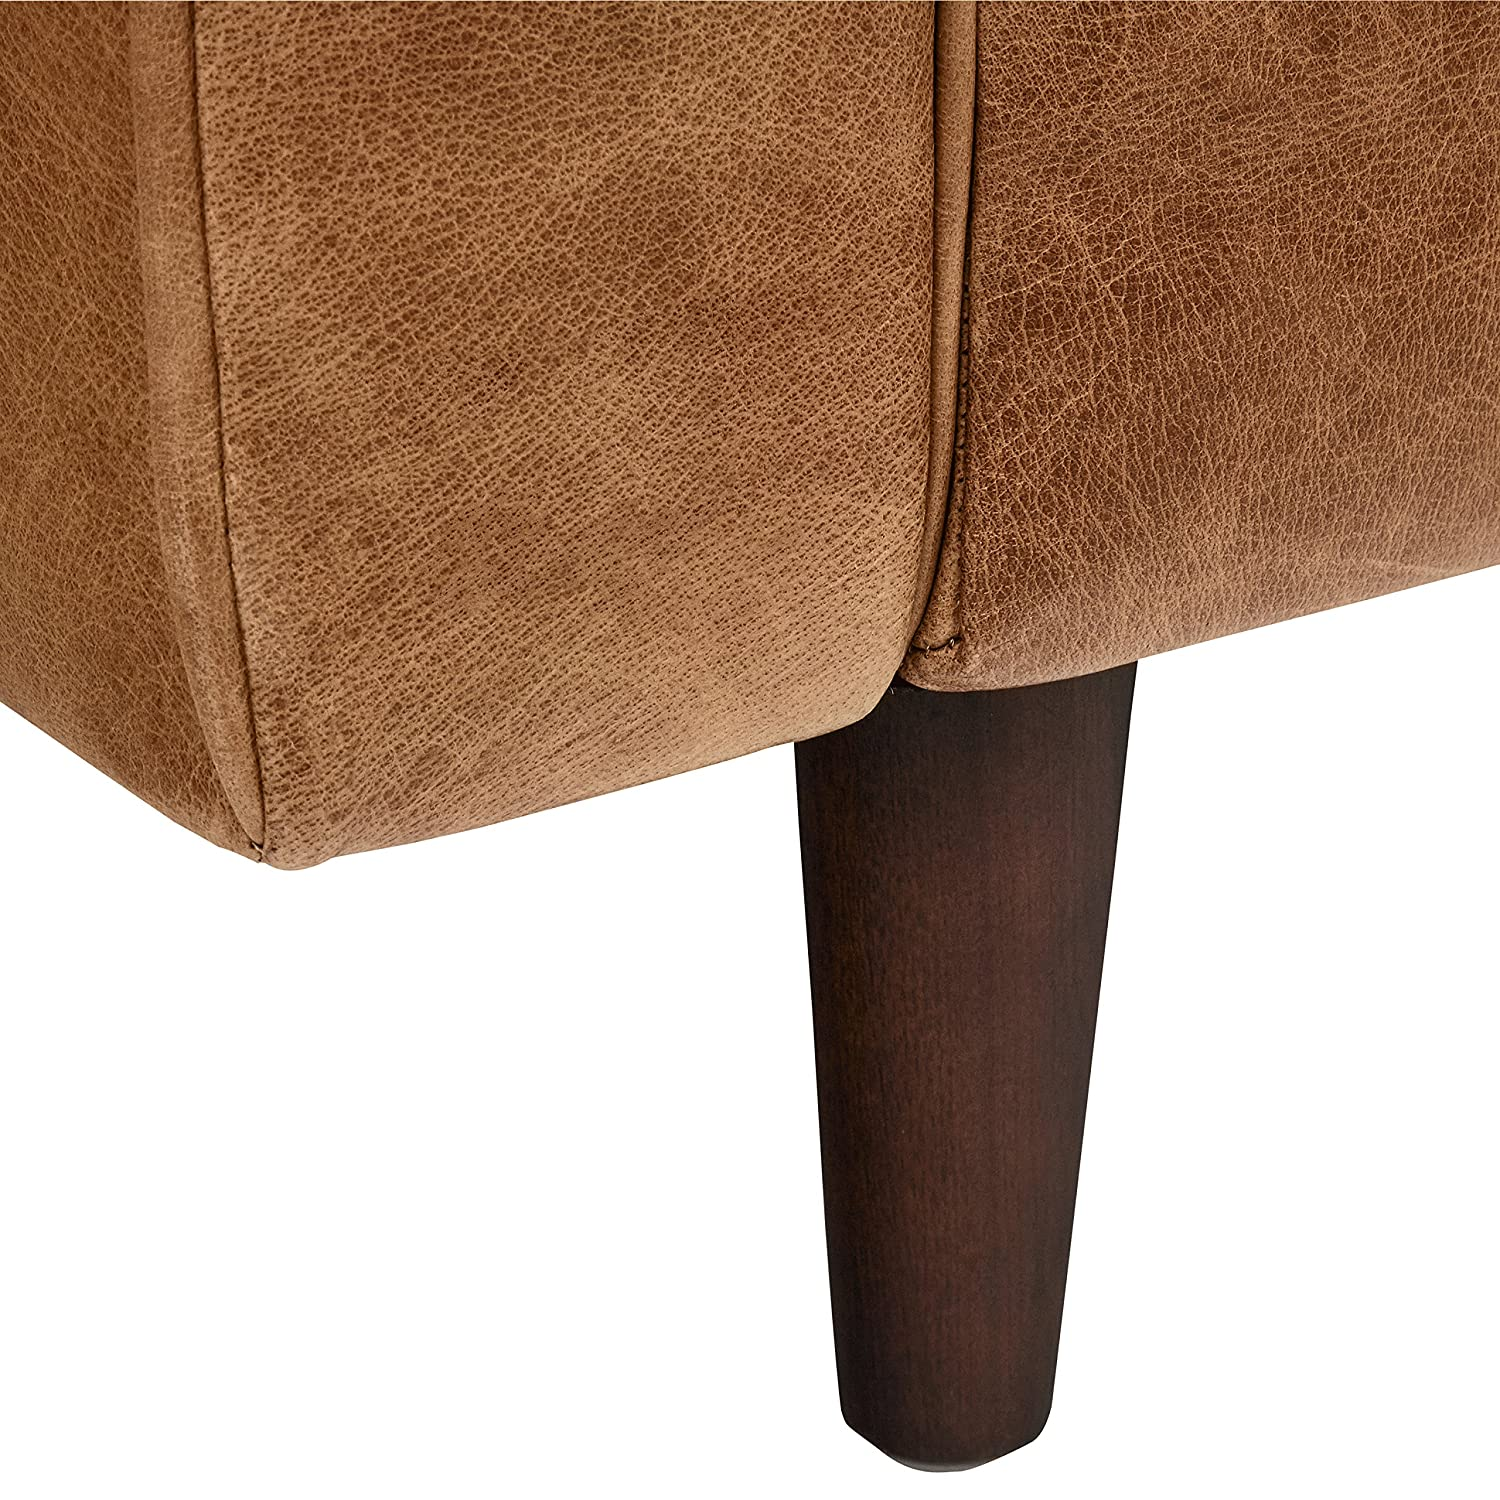 Rivet Aiden Tufted Mid-Century Modern Leather Accent Chair, 35.4 W, Cognac